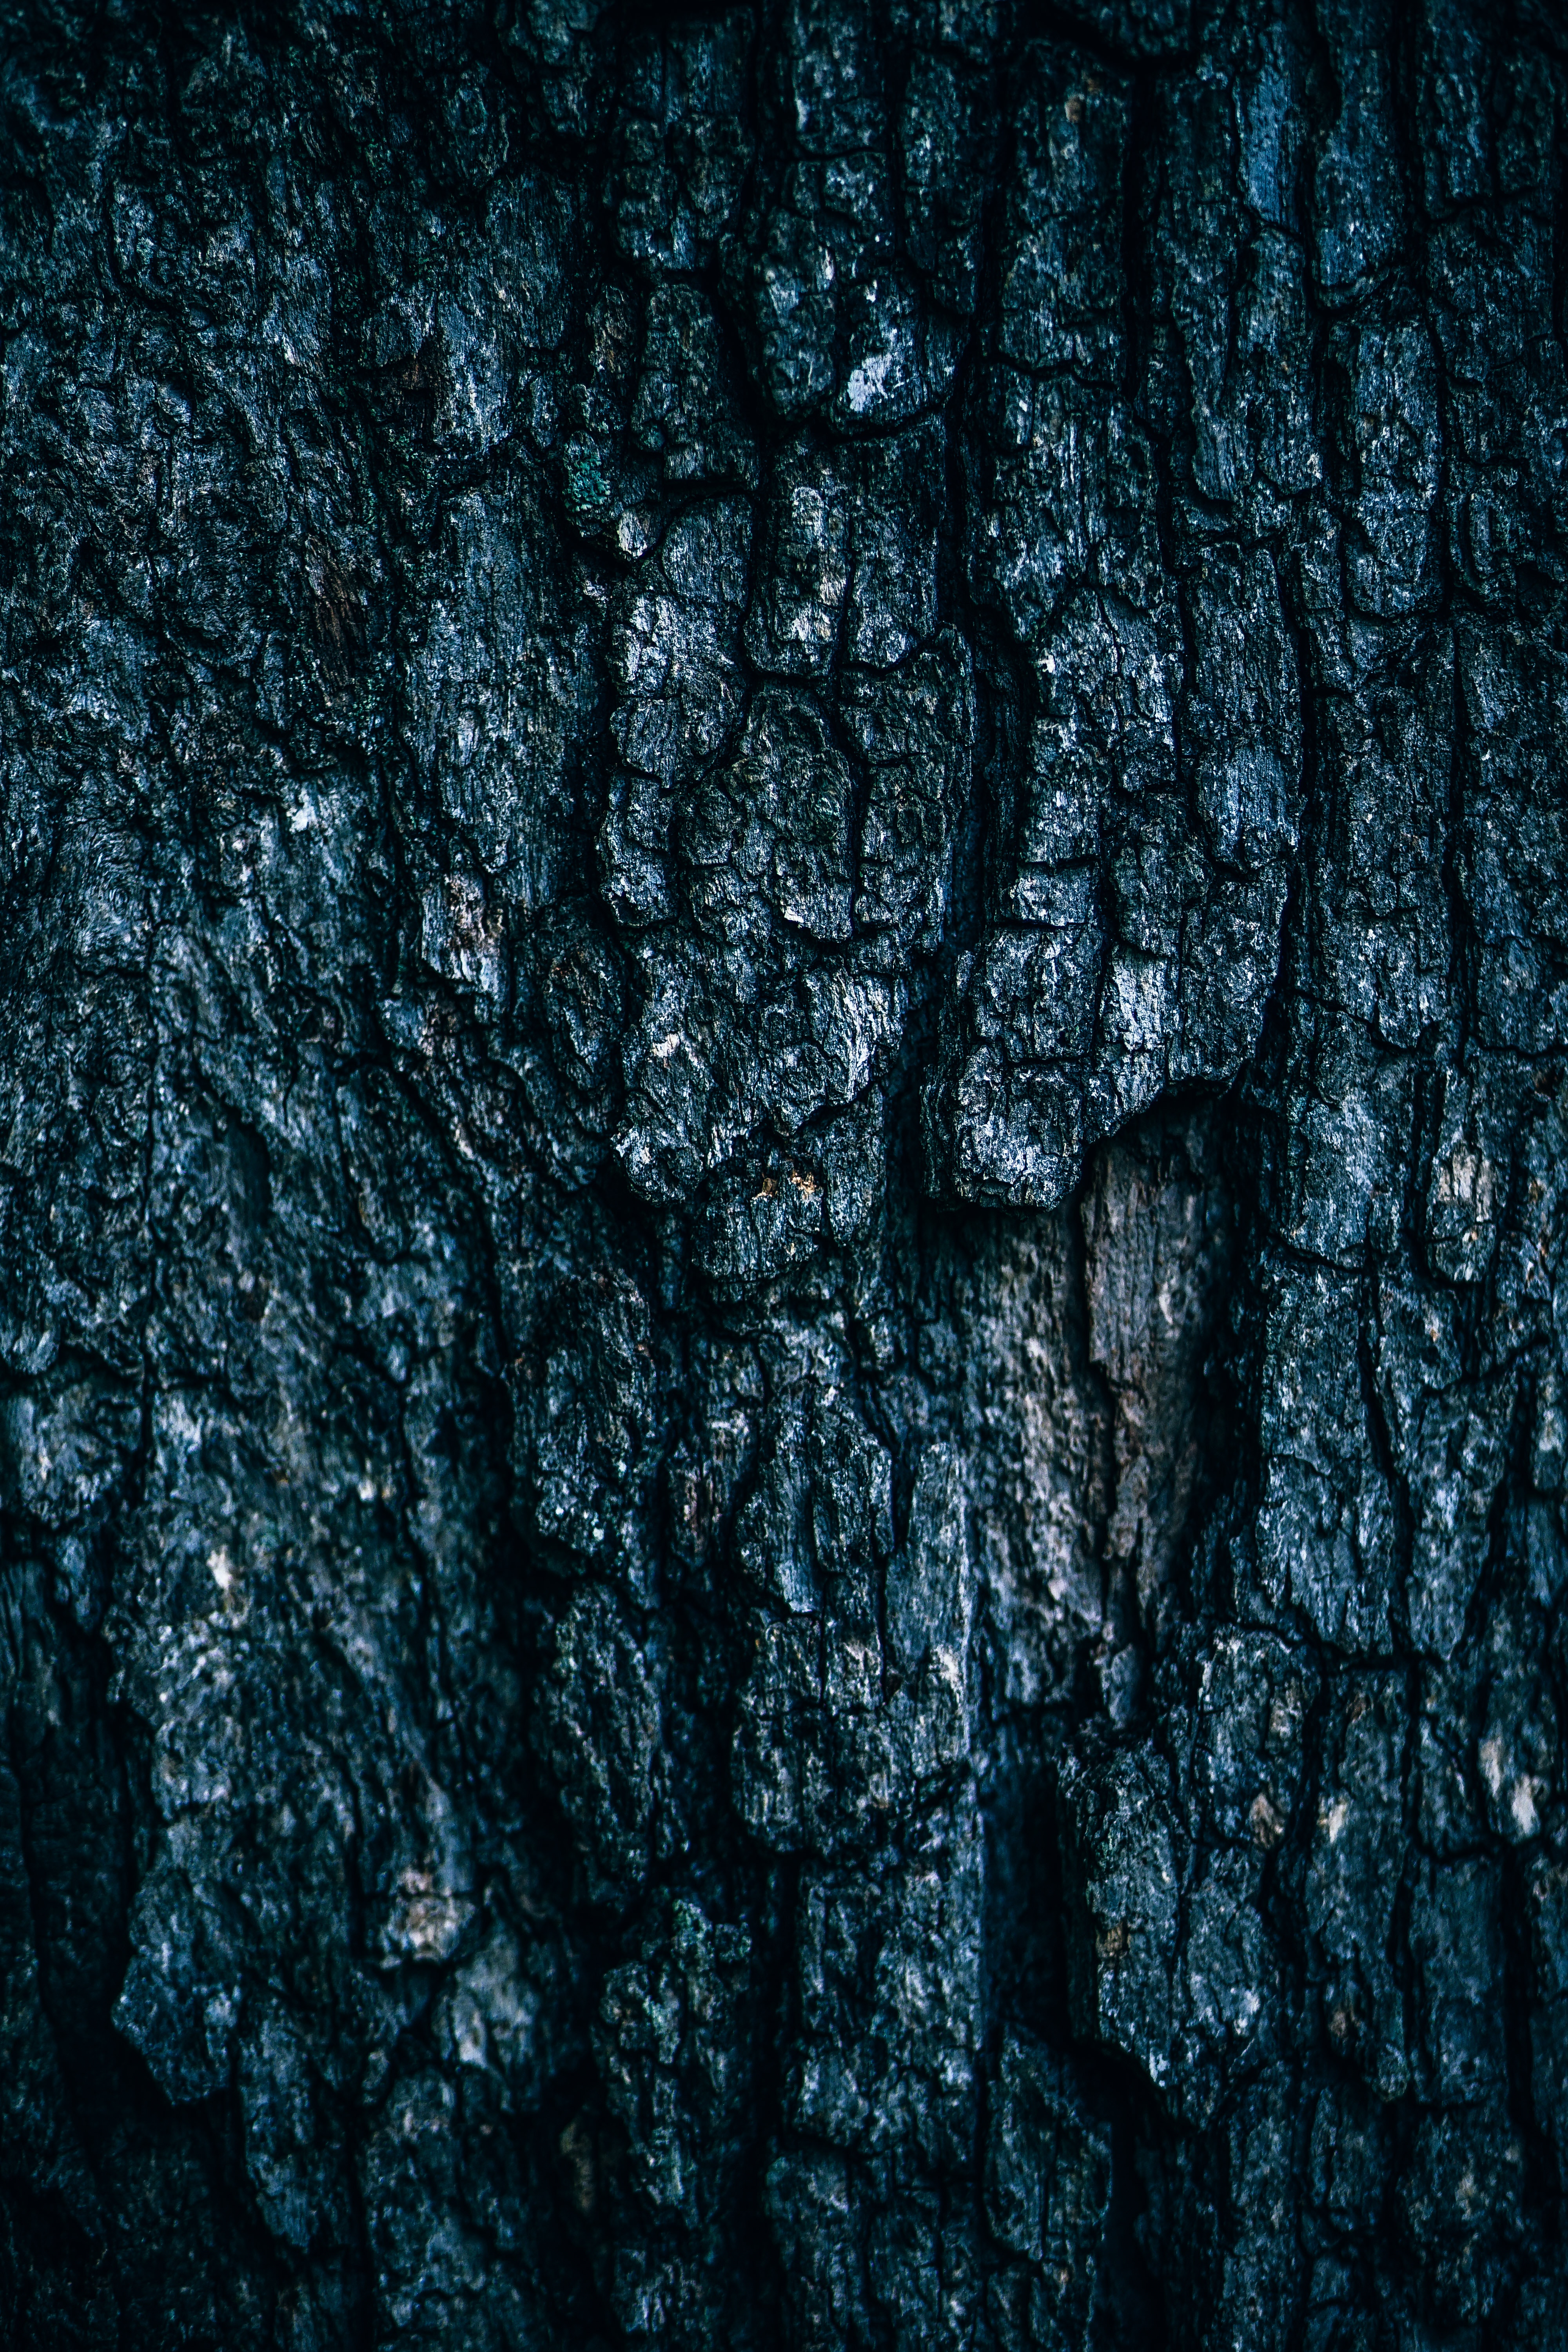 Dark Tree Bark |